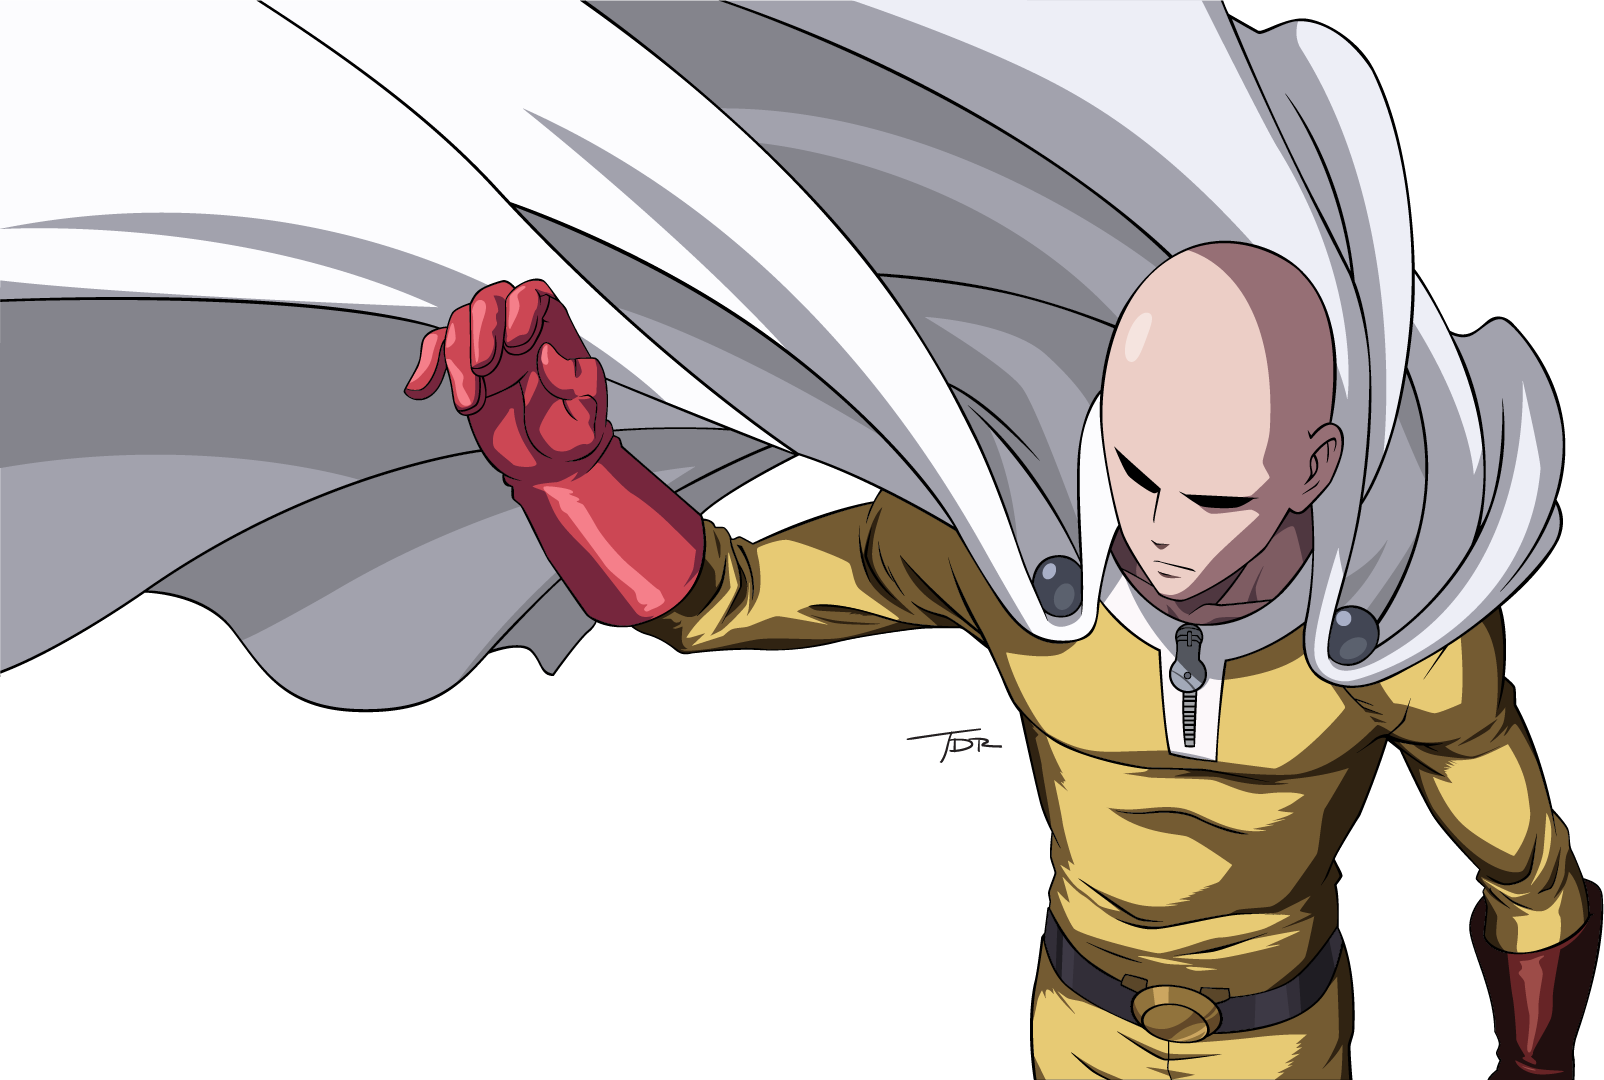 Saitama 2 One Punch Man By Truss31 D9nz7ey Png 1604 1080 One Punch Man Anime Saitama One Punch Man One Punch Man King